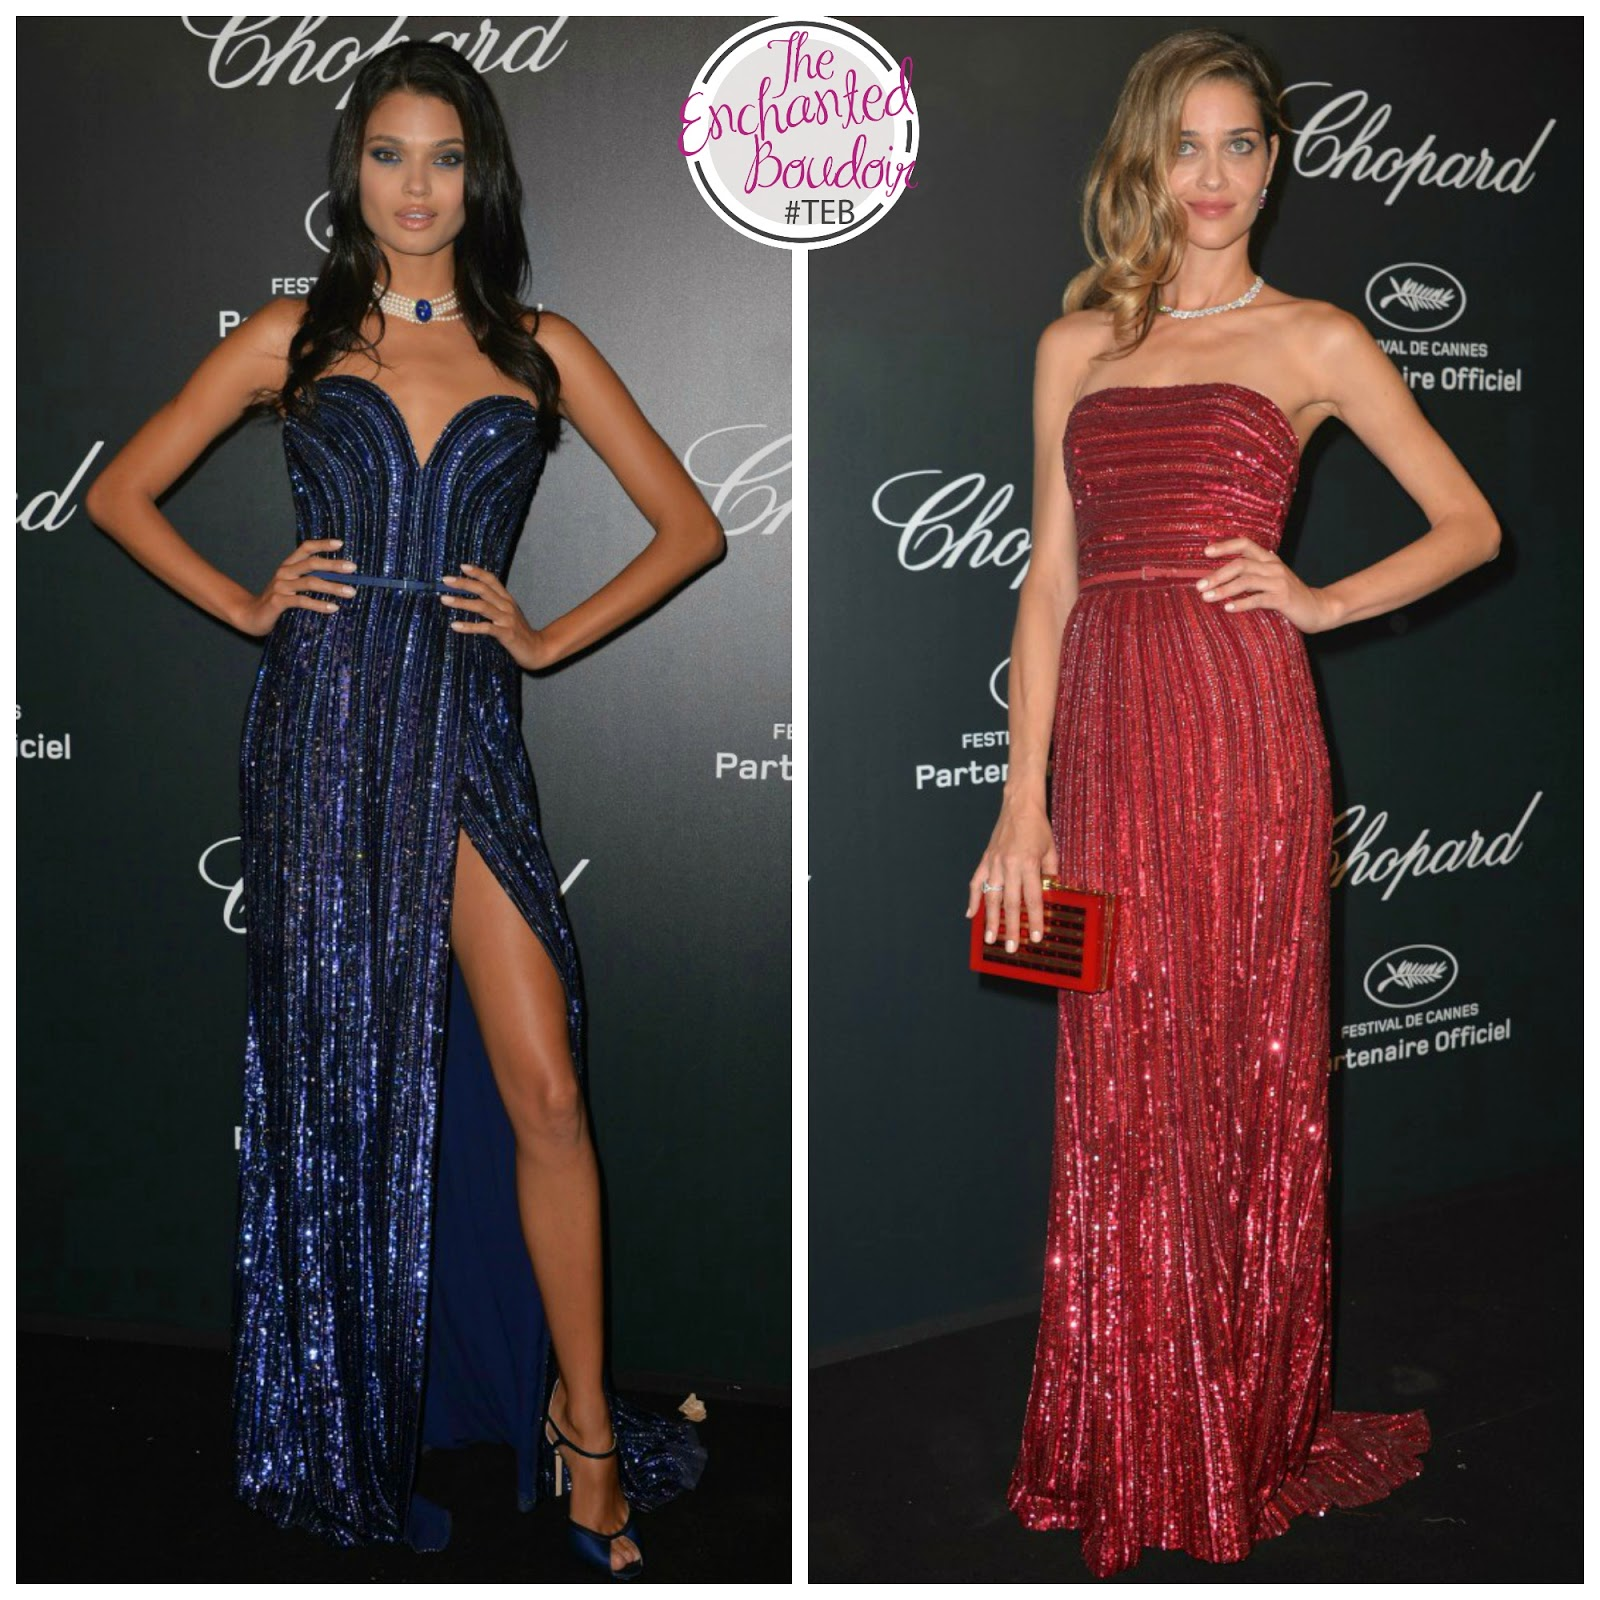 Chopard 'Gold' party